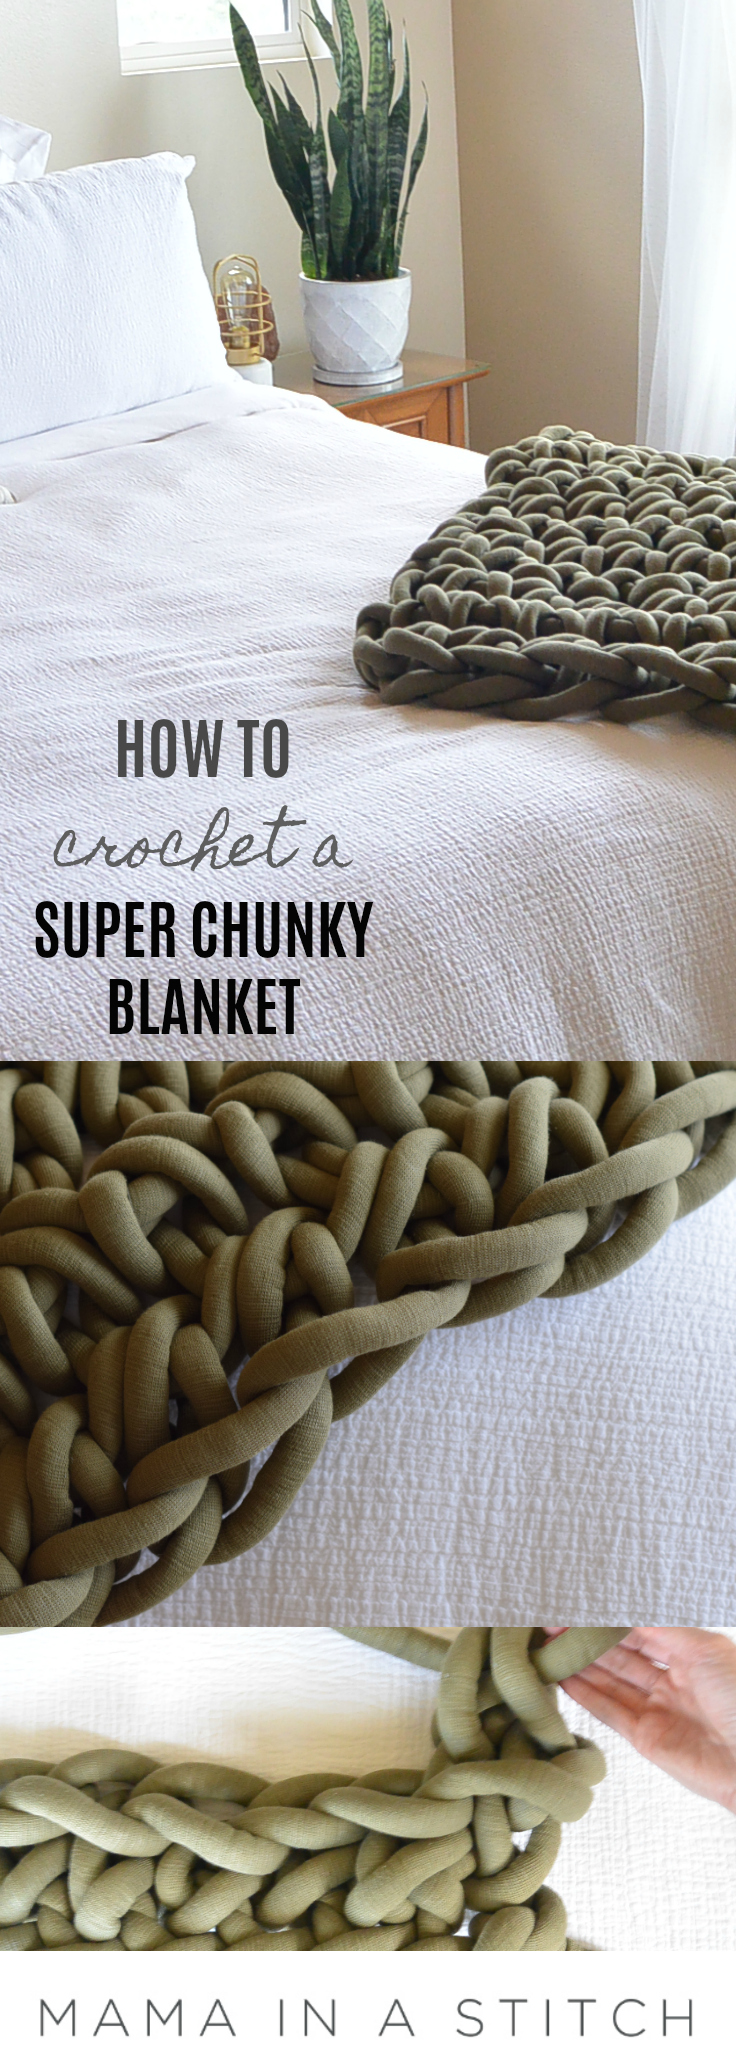 How To Crochet A Big Fast Blanket